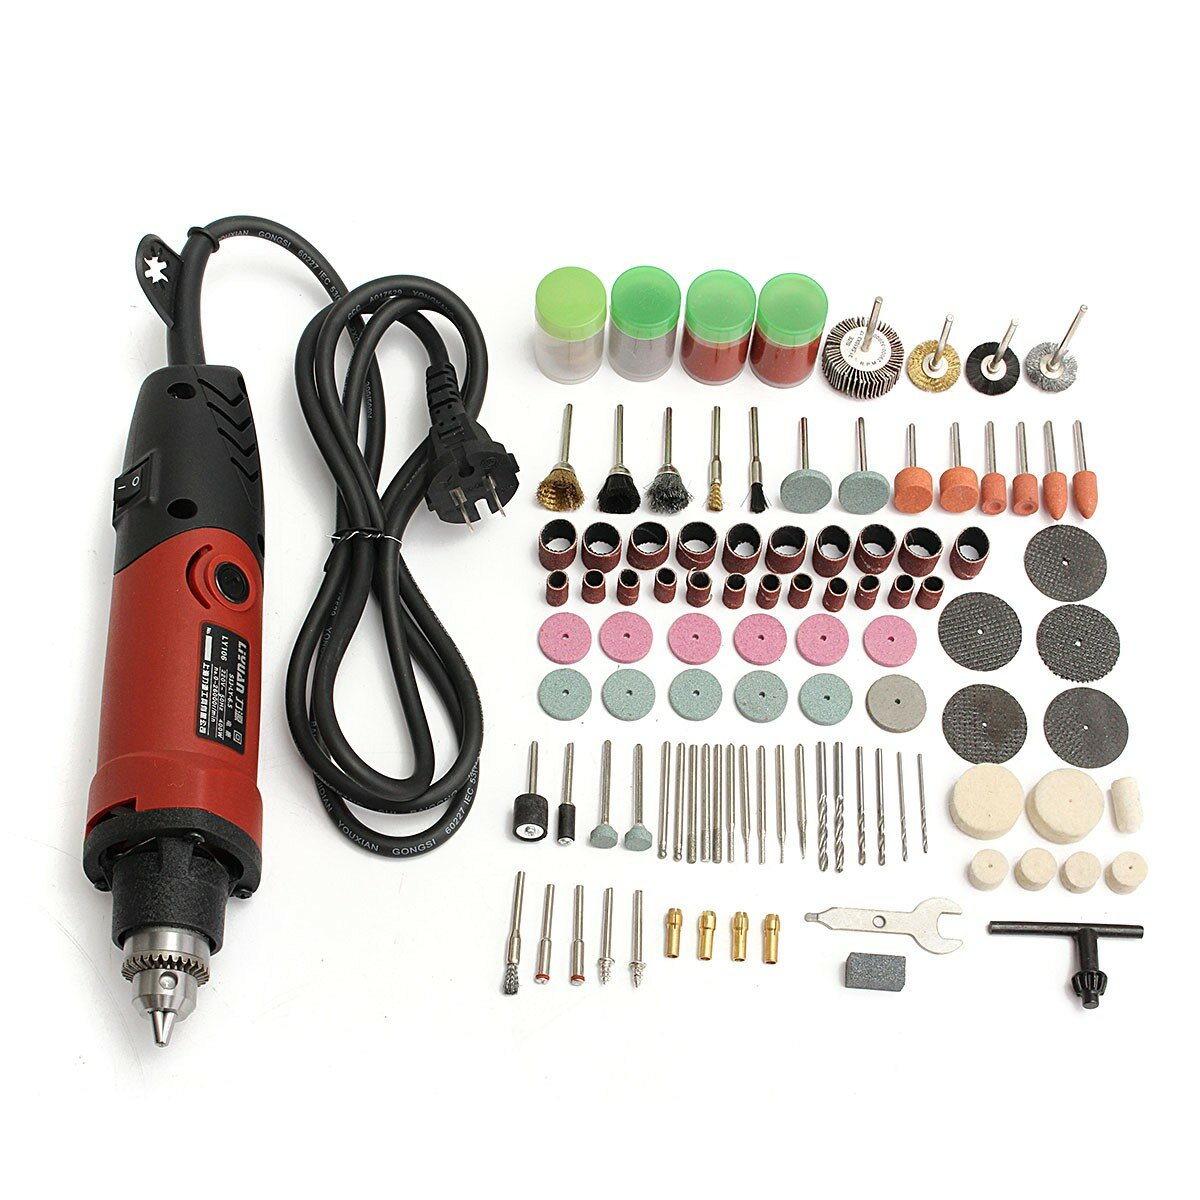 48V 3 In 1 Cordless Power Drills 15+1 Torque Drilling Tool Dual Speed Electric Screwdriver Drill W/ 1 or 2 Li-ion Battery - 1